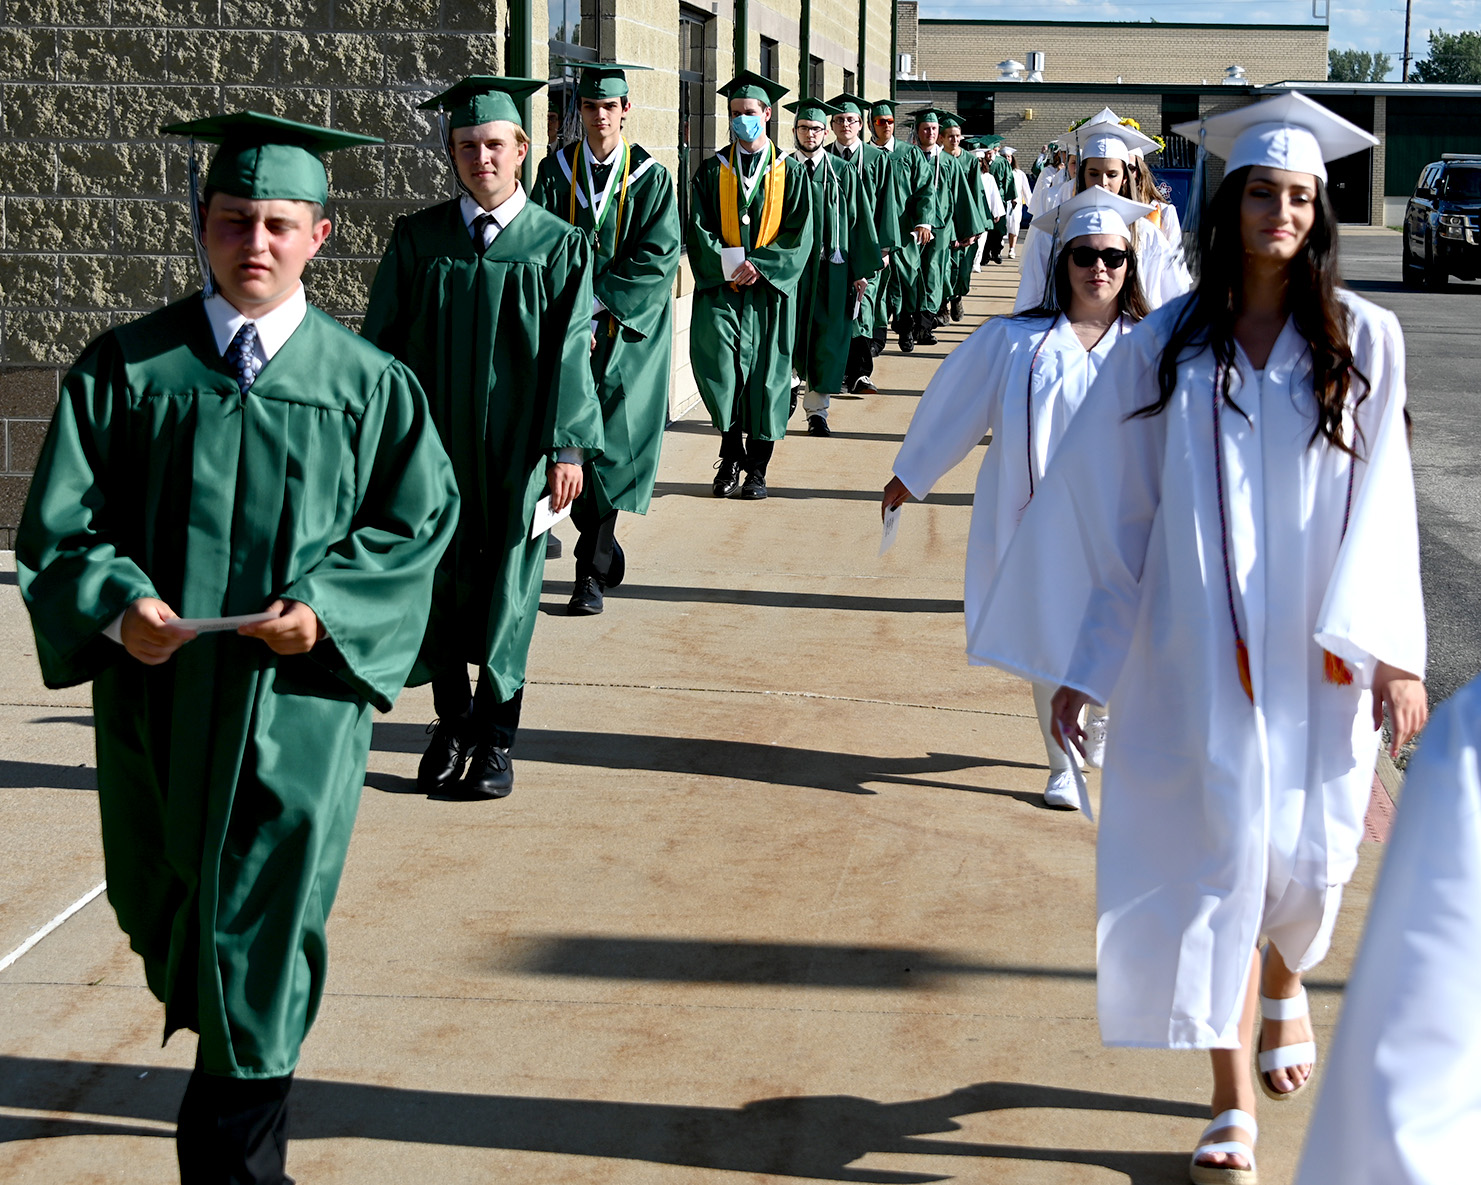 Entrance Procession of Students